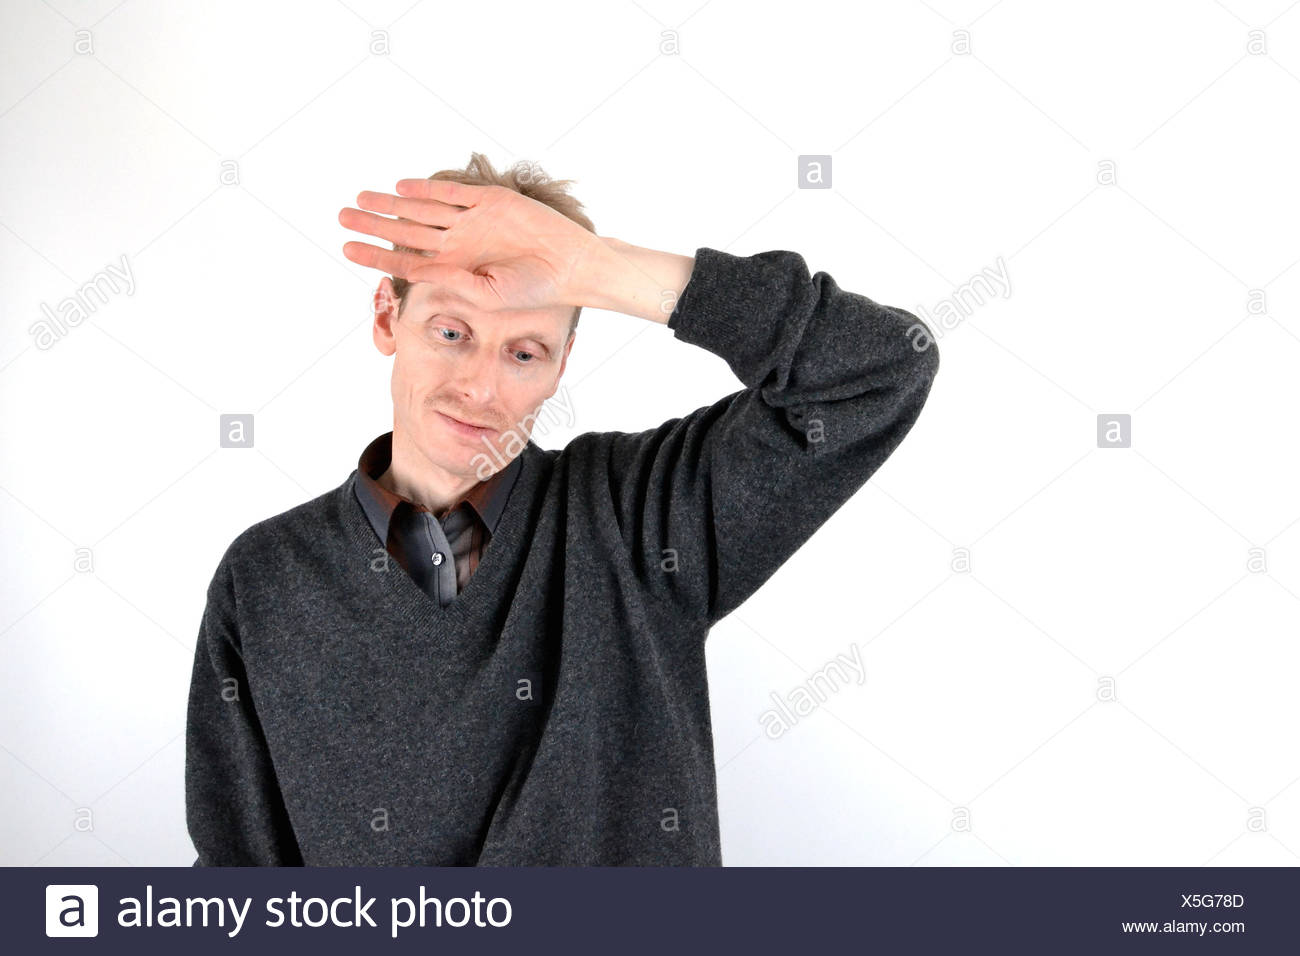 Blonde man who has his hand on his forehead Stock Photo